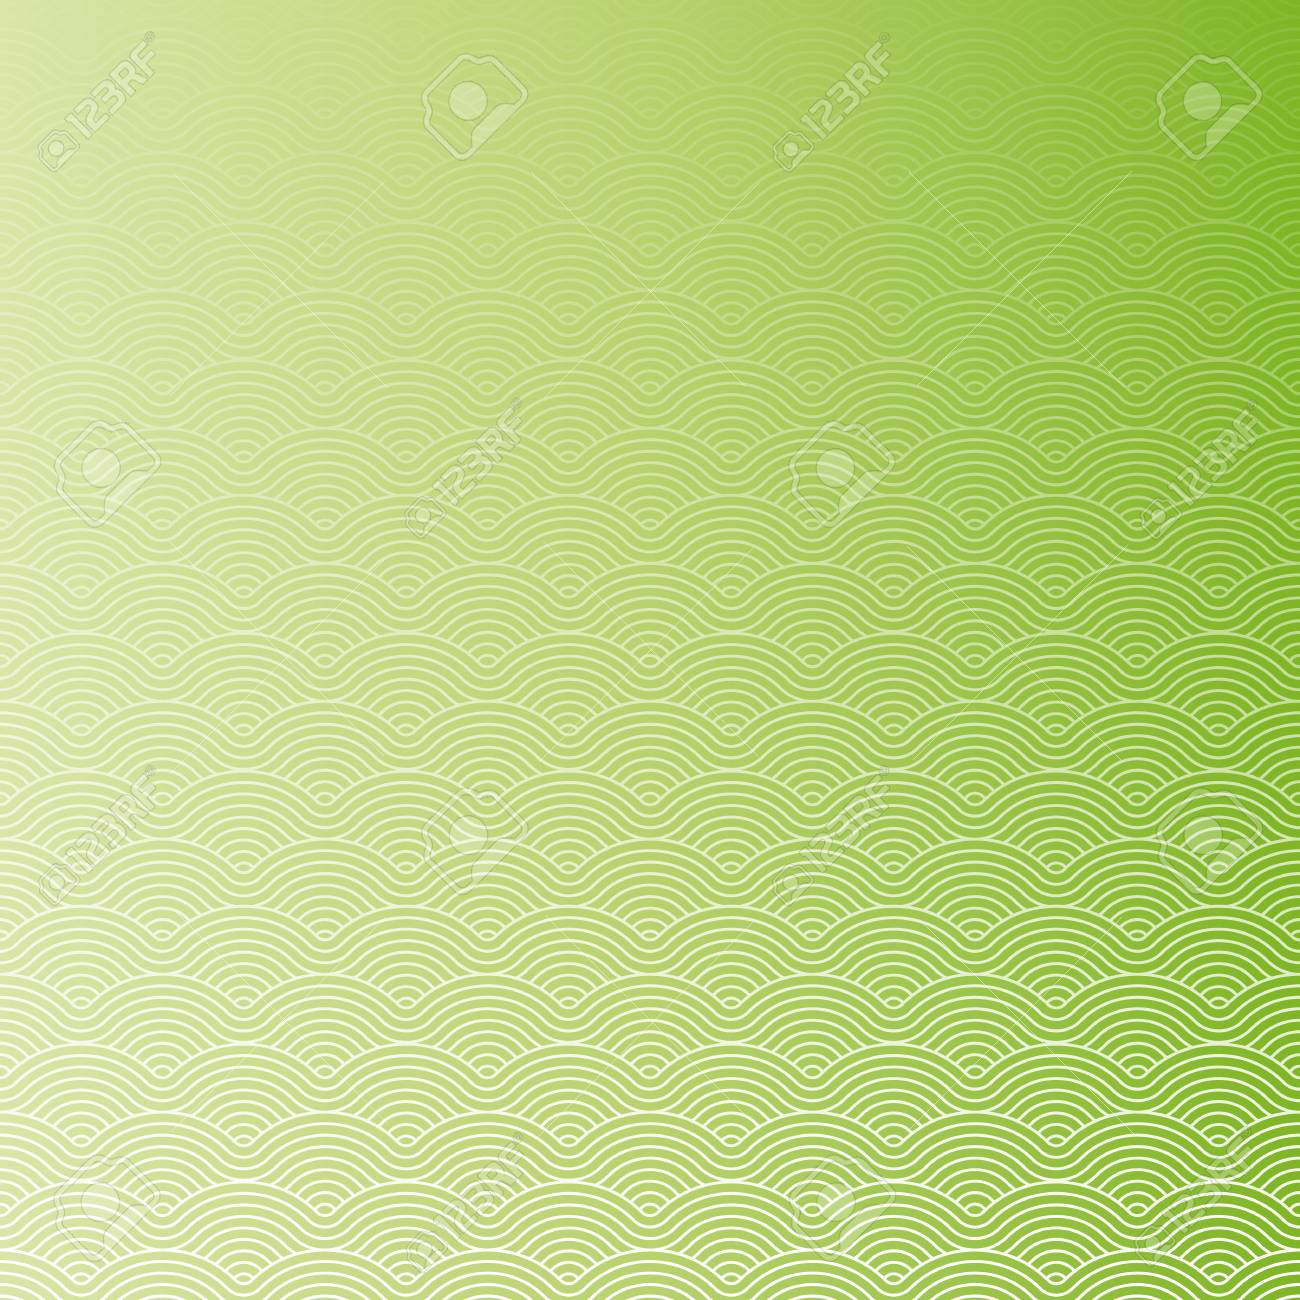 Colorful geometric repetitive vector curvy waves pattern texture background vector graphic illustration - 46085256